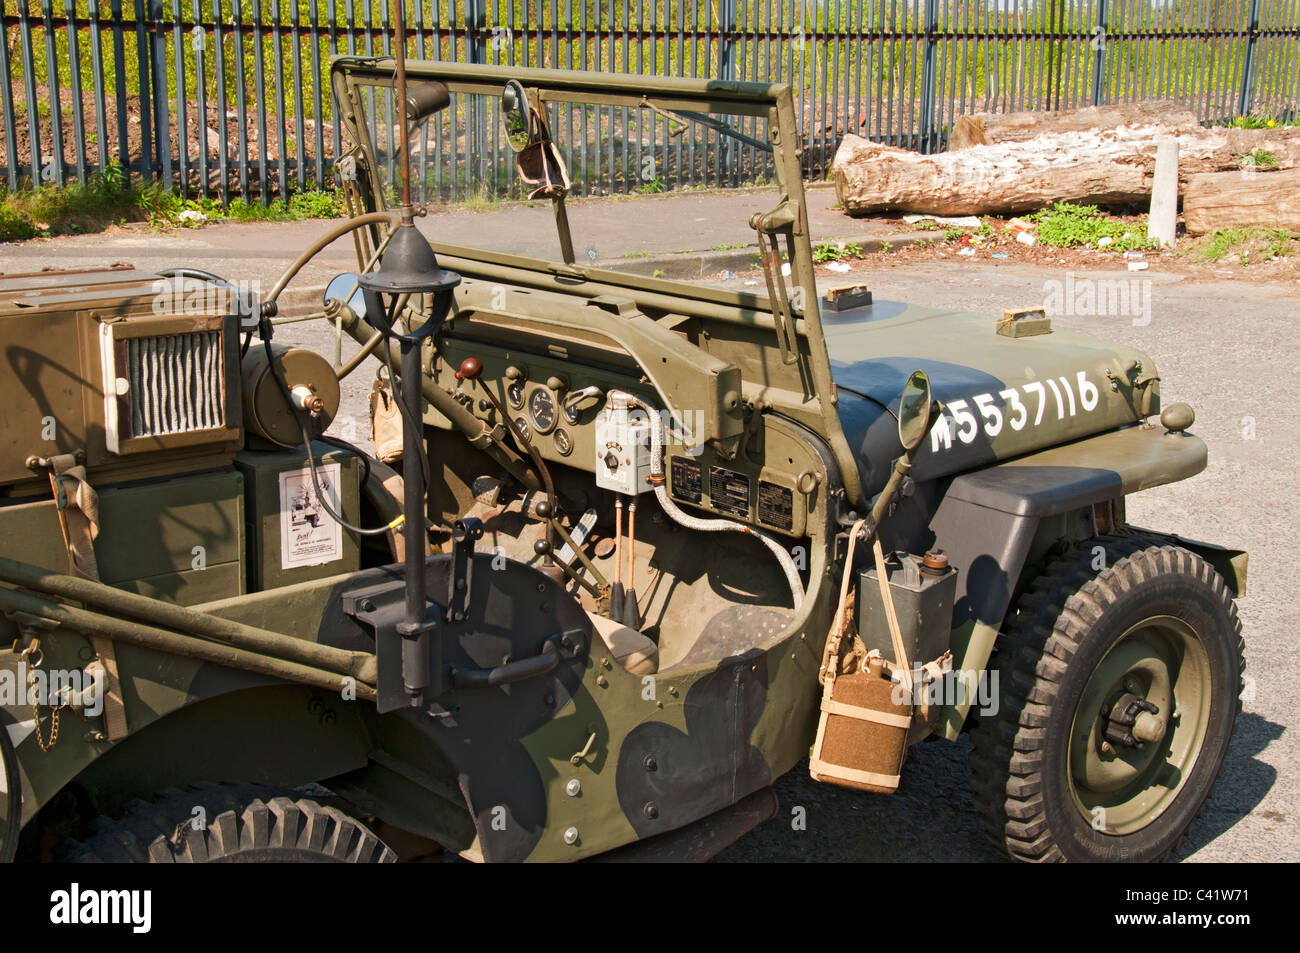 Ford Willys MB US Army Jeep, c1941-5, at a WW2 parade, Miles Platting, Manchester, England, UK - Stock Image